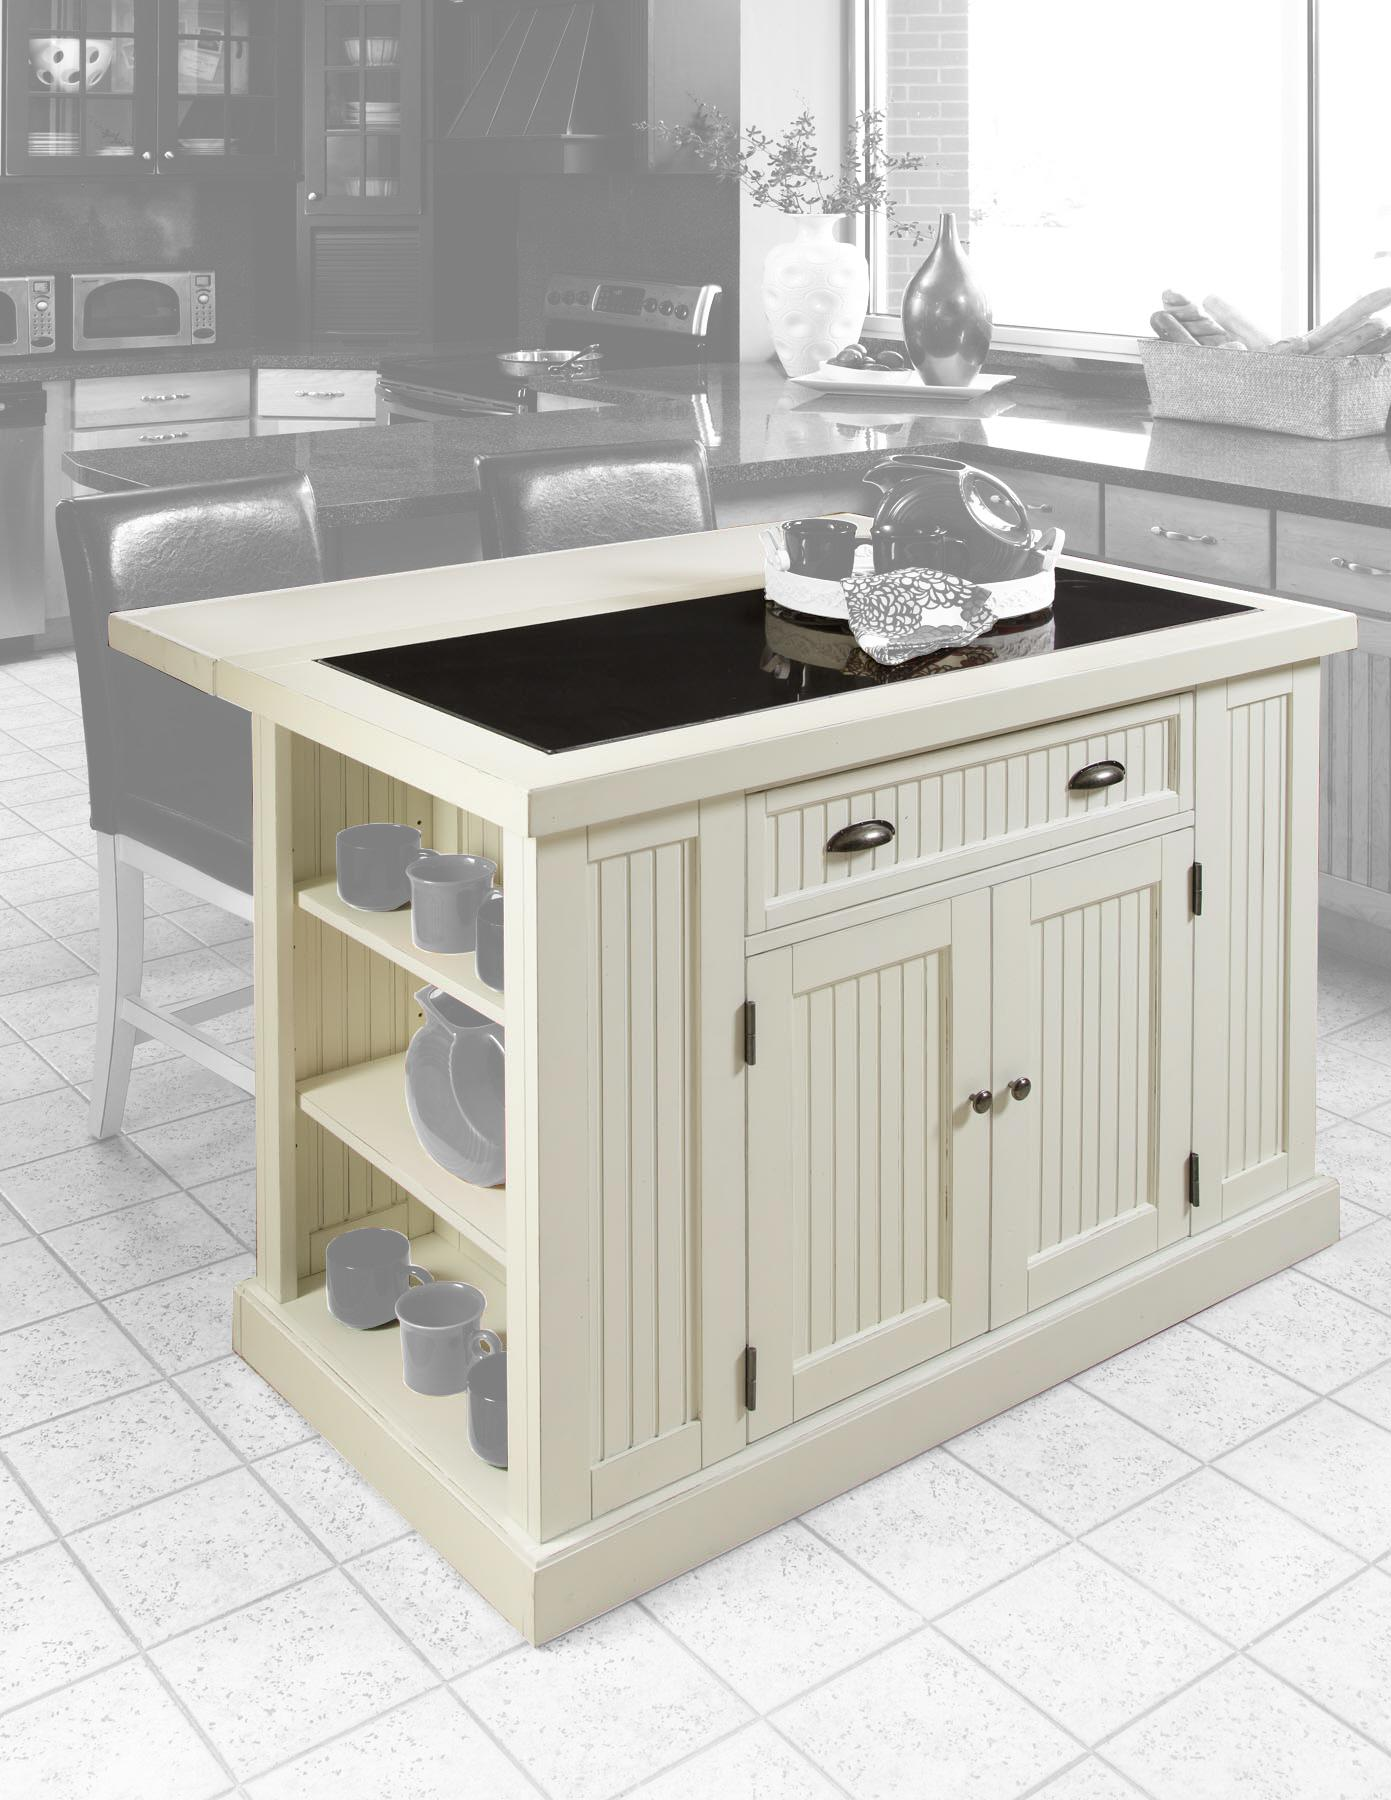 Nantucket kitchen island distressed finish ojcommerce for Nantucket style kitchen